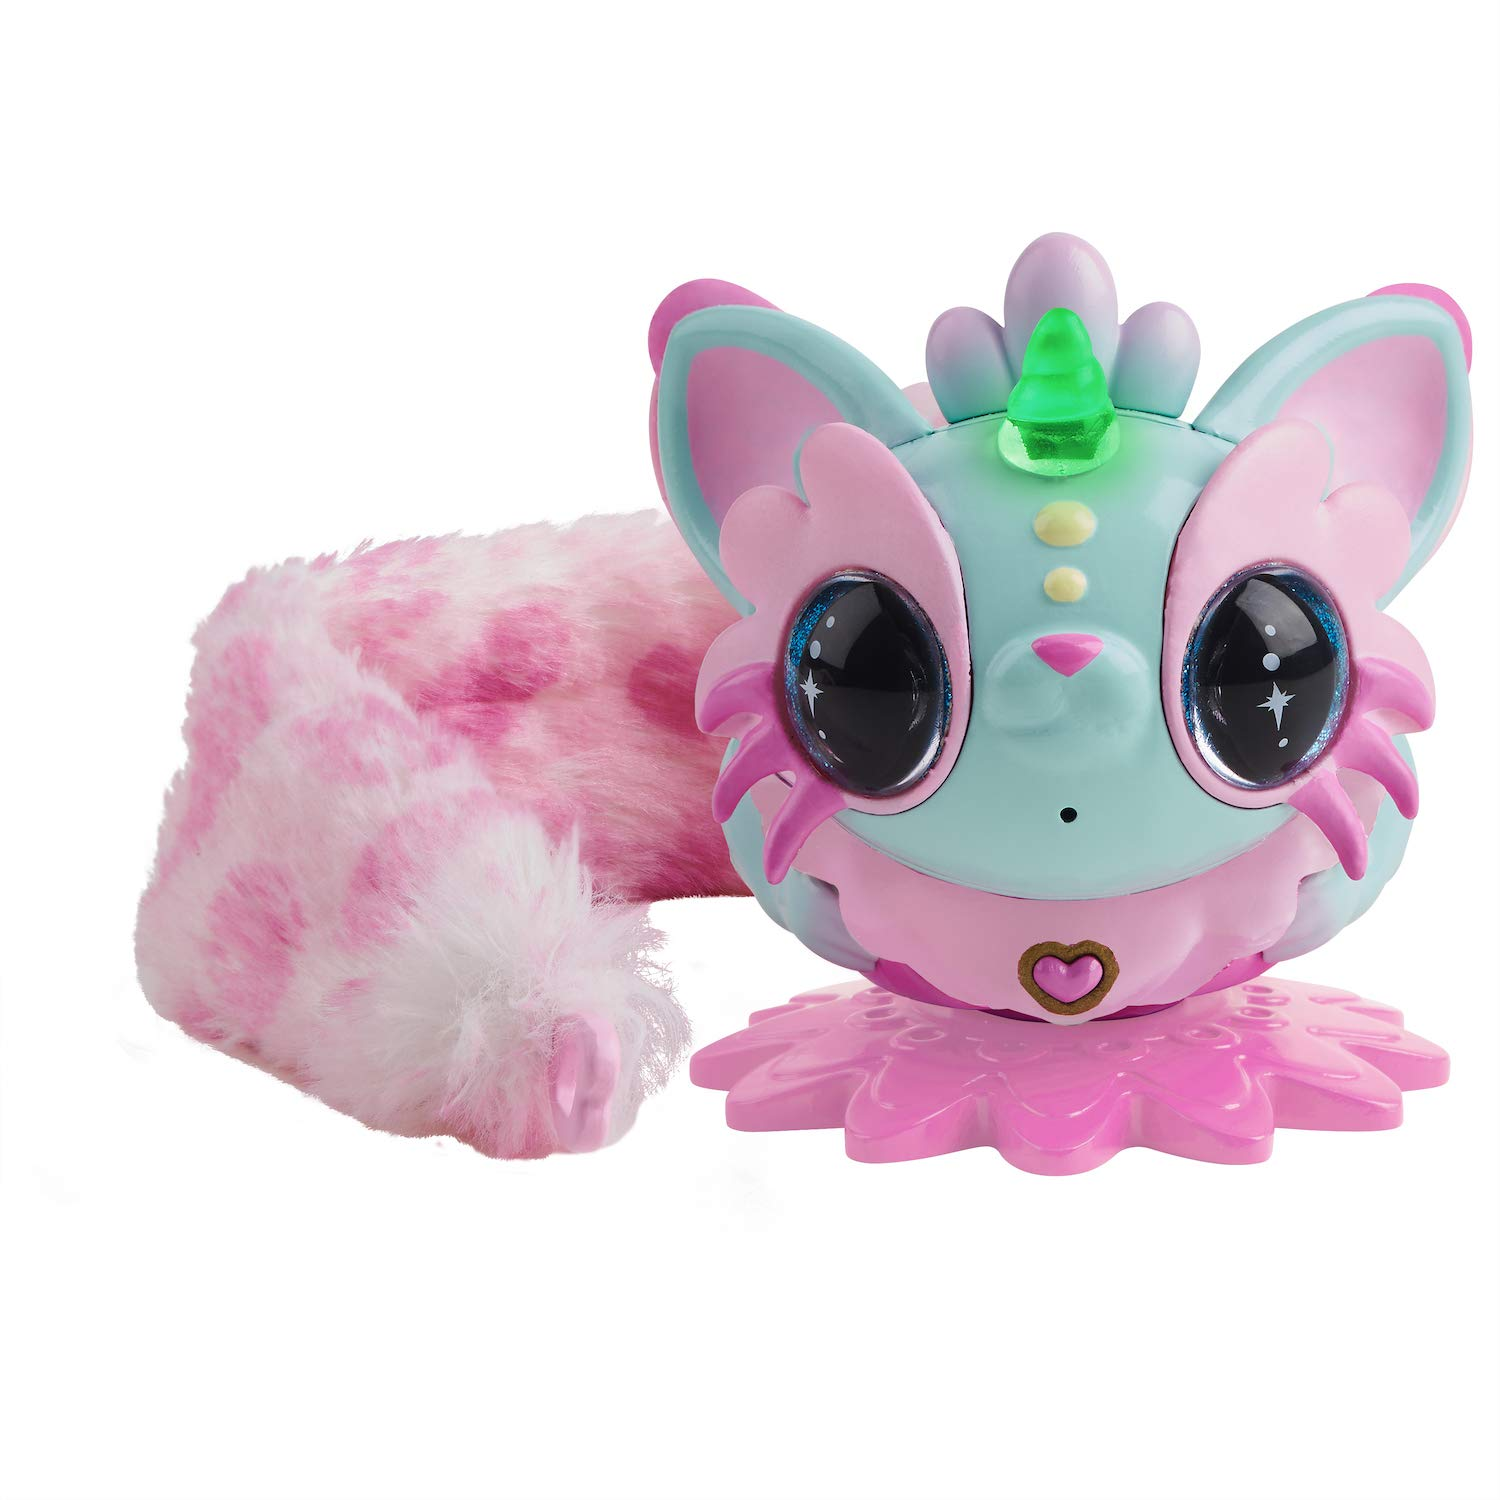 해치멀 픽시 벨 Hatchimals Pixie Belles - Interactive Enchanted Animal Toy, Aurora (Turquoise)